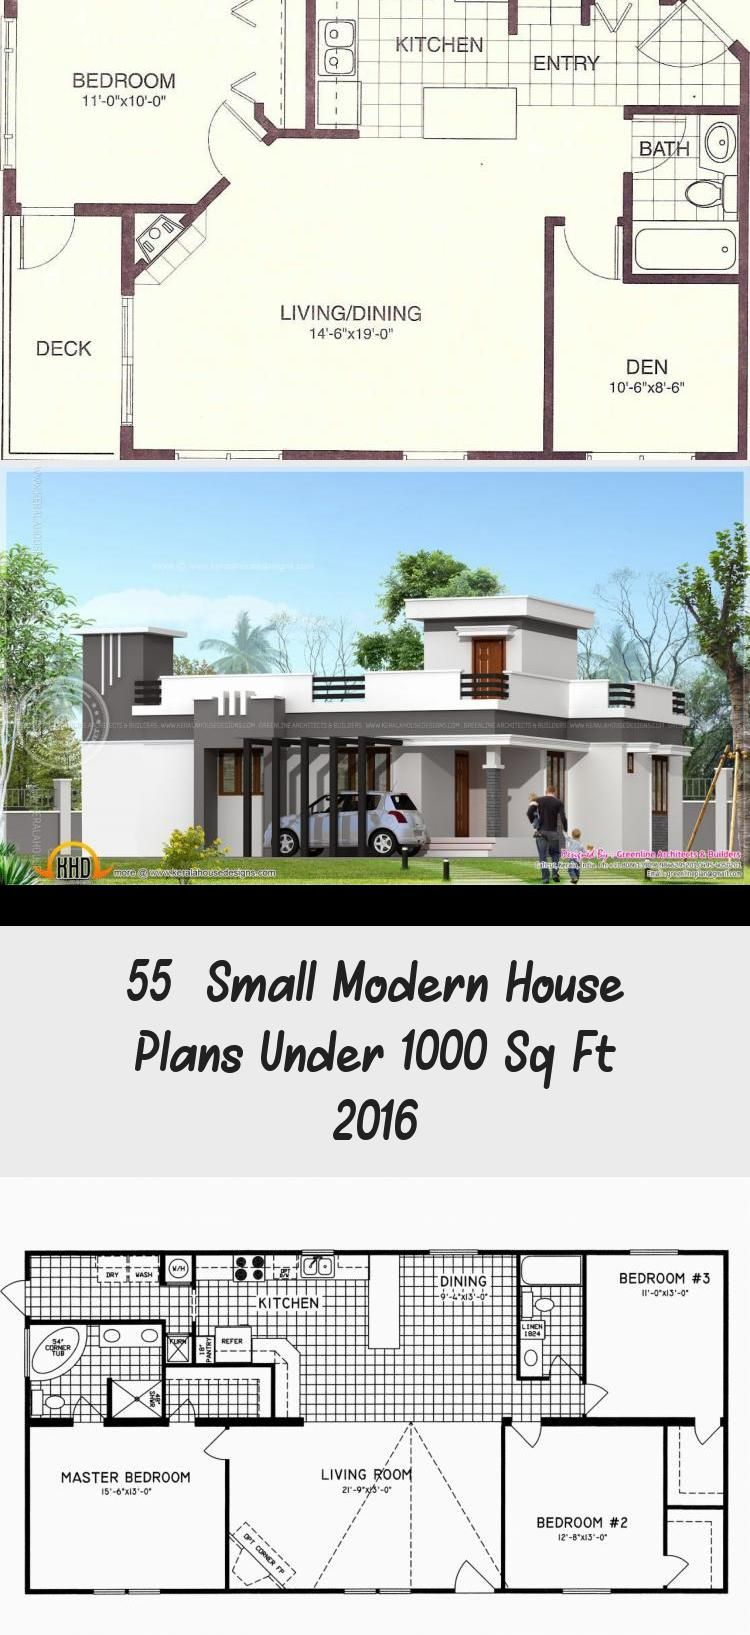 50 Small Modern House Plans Under 1000 Sq Ft 2019 Simplemodernhousesketch Modernhousesketchart Modernhousesketcharchitects Modernhousesketcheasy Modernhous